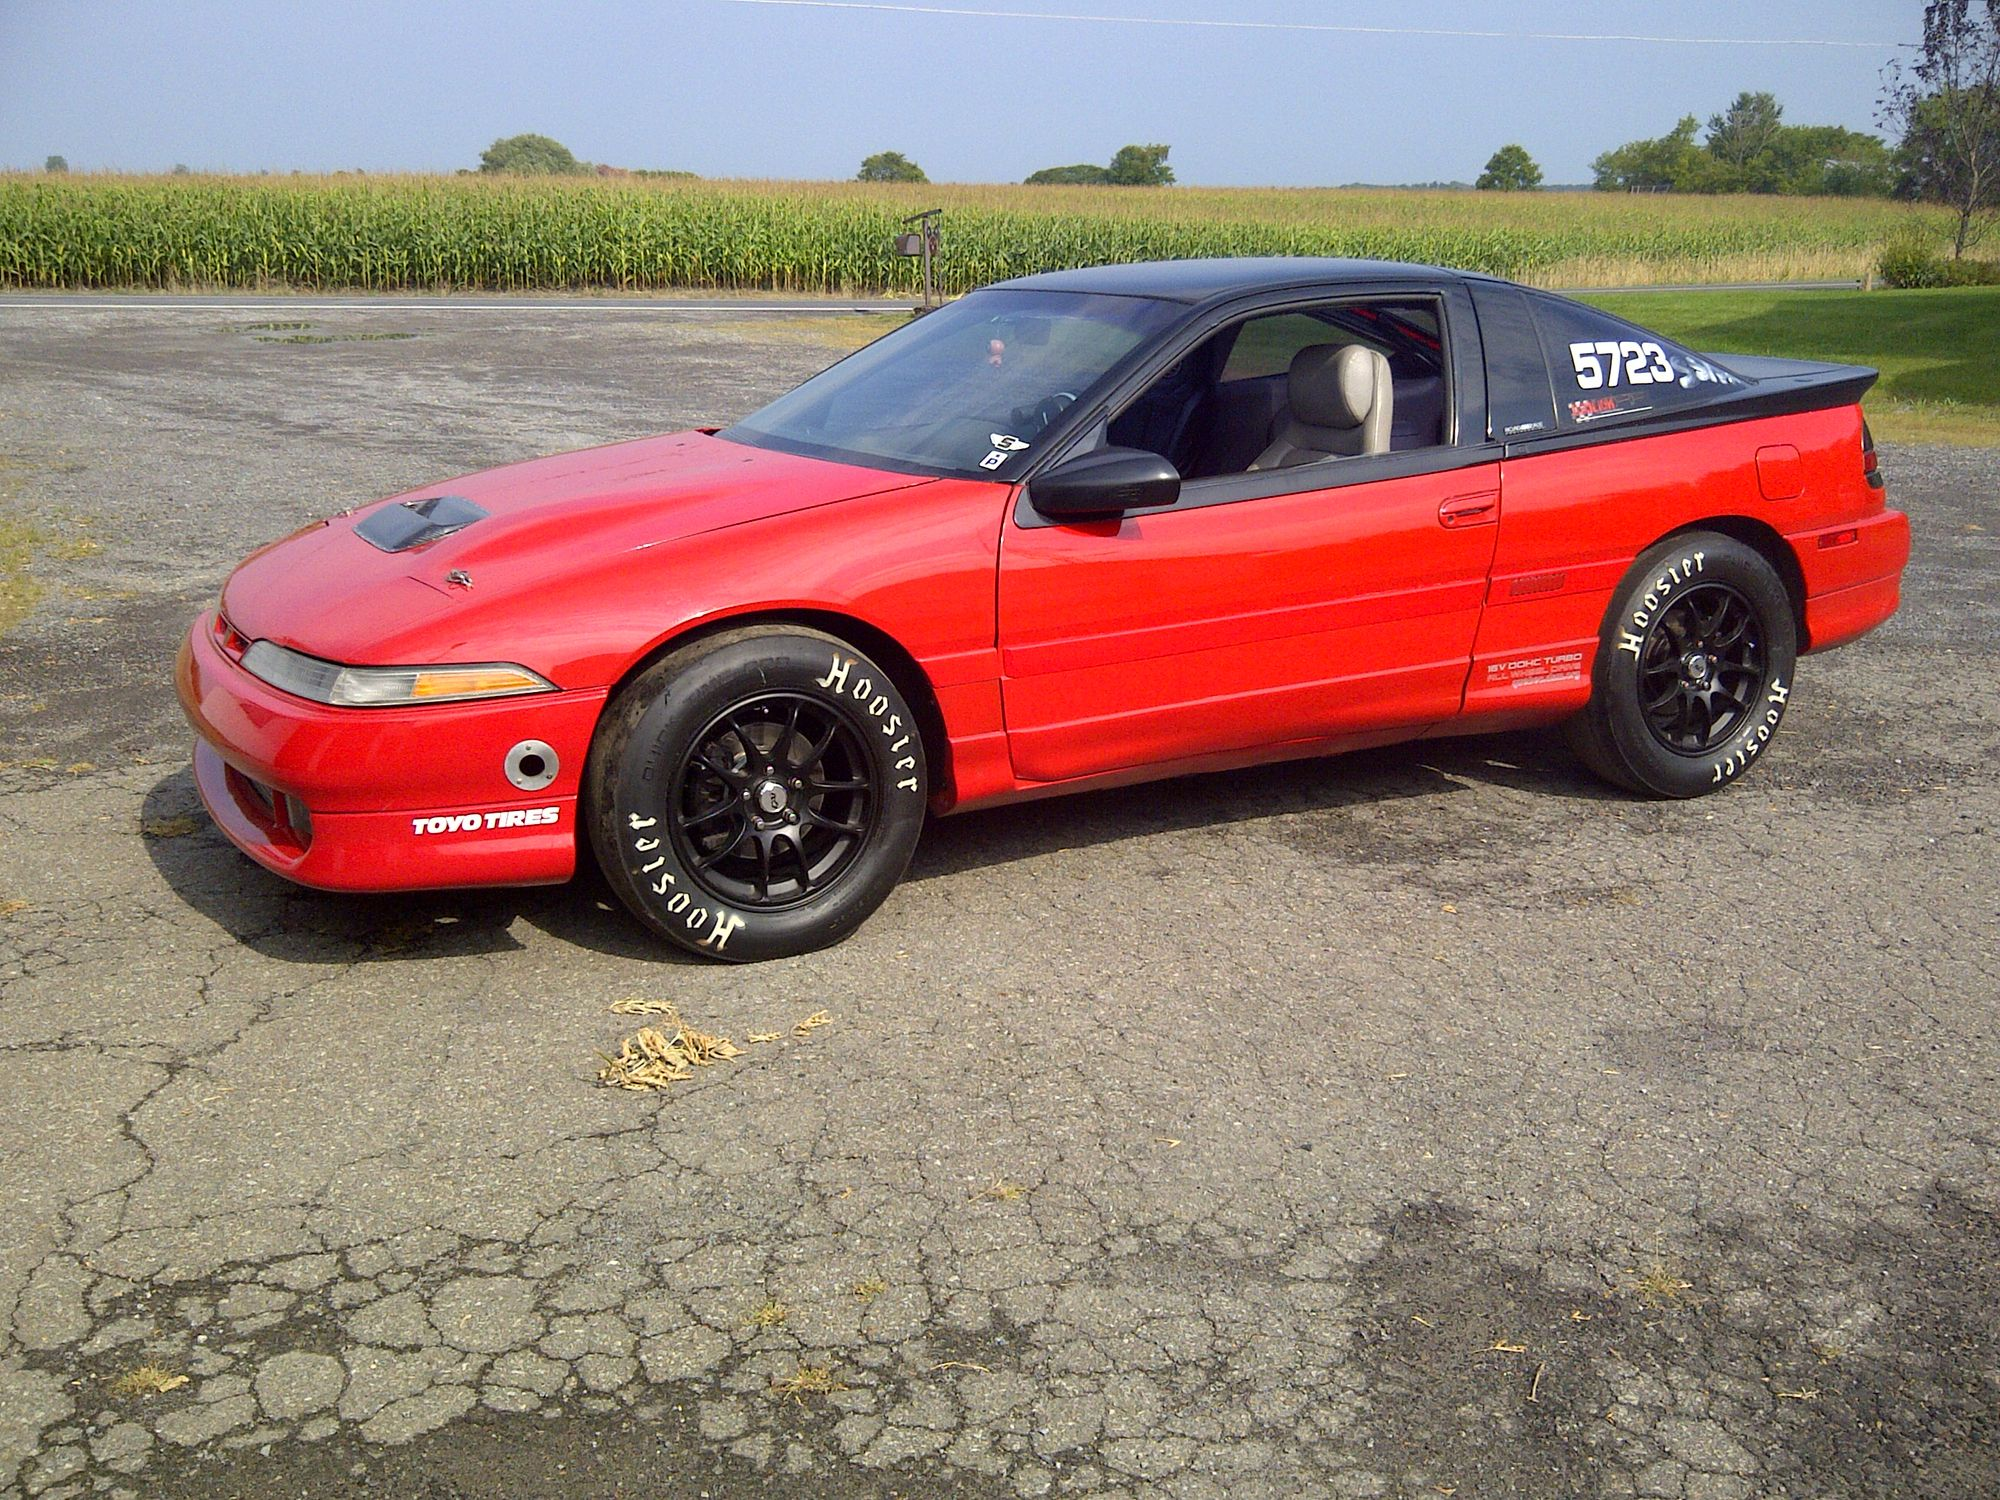 Eagle talon photo - 5